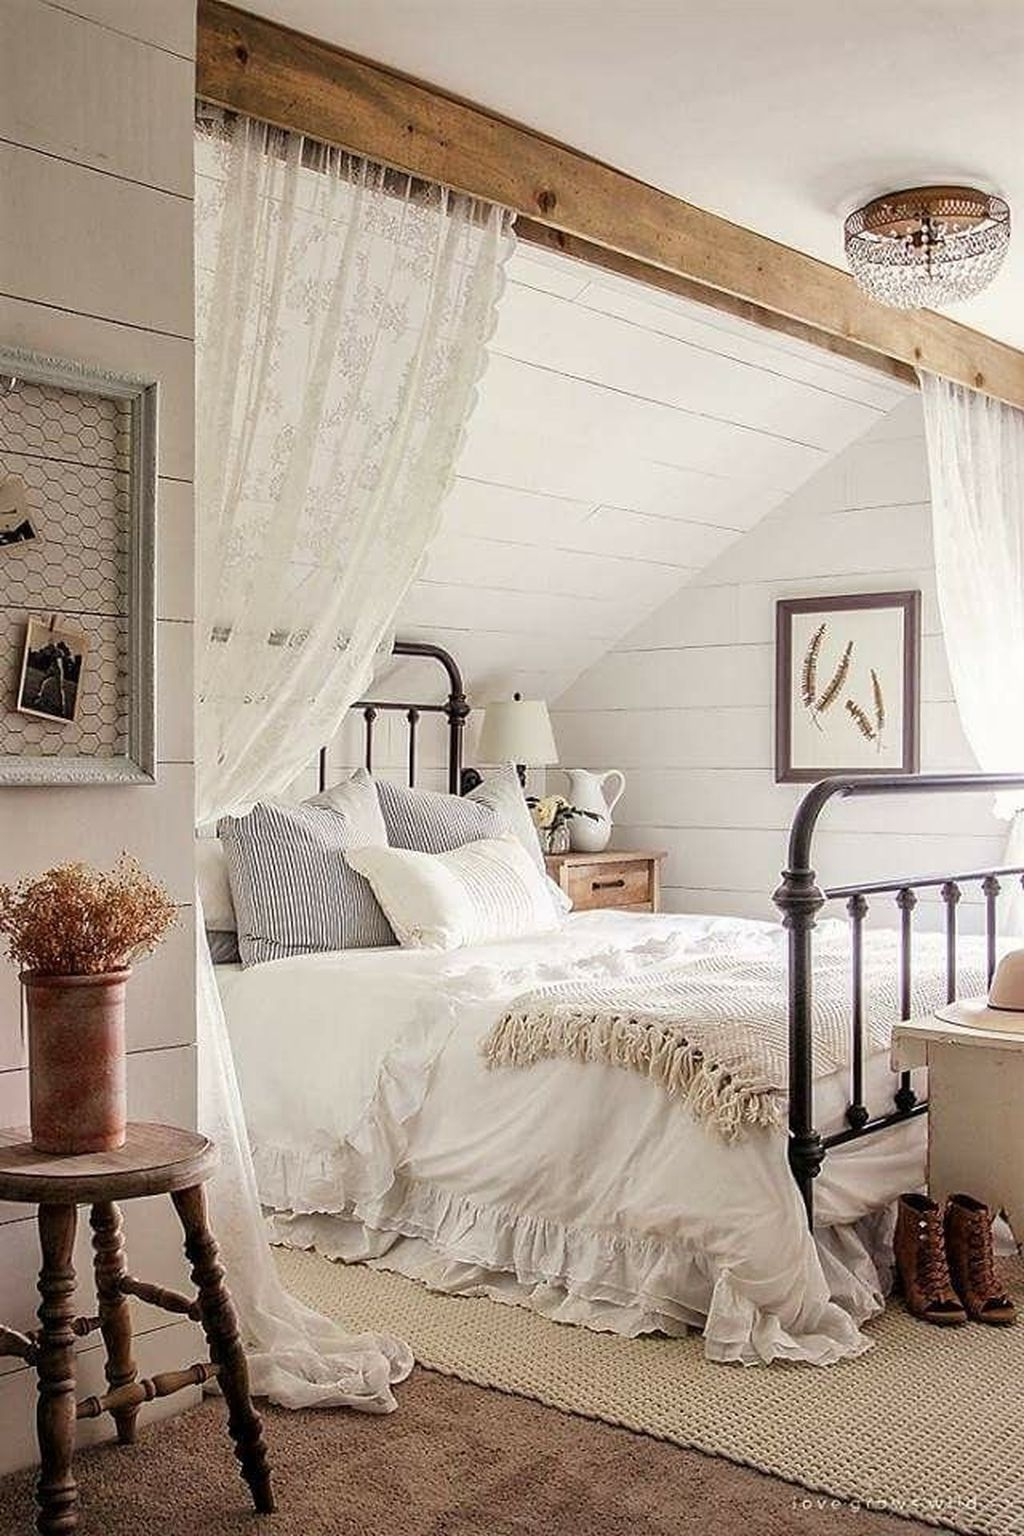 Master bedroom decor 2018   The Best  Spring Bedroom Decoration Ideas  Home Making